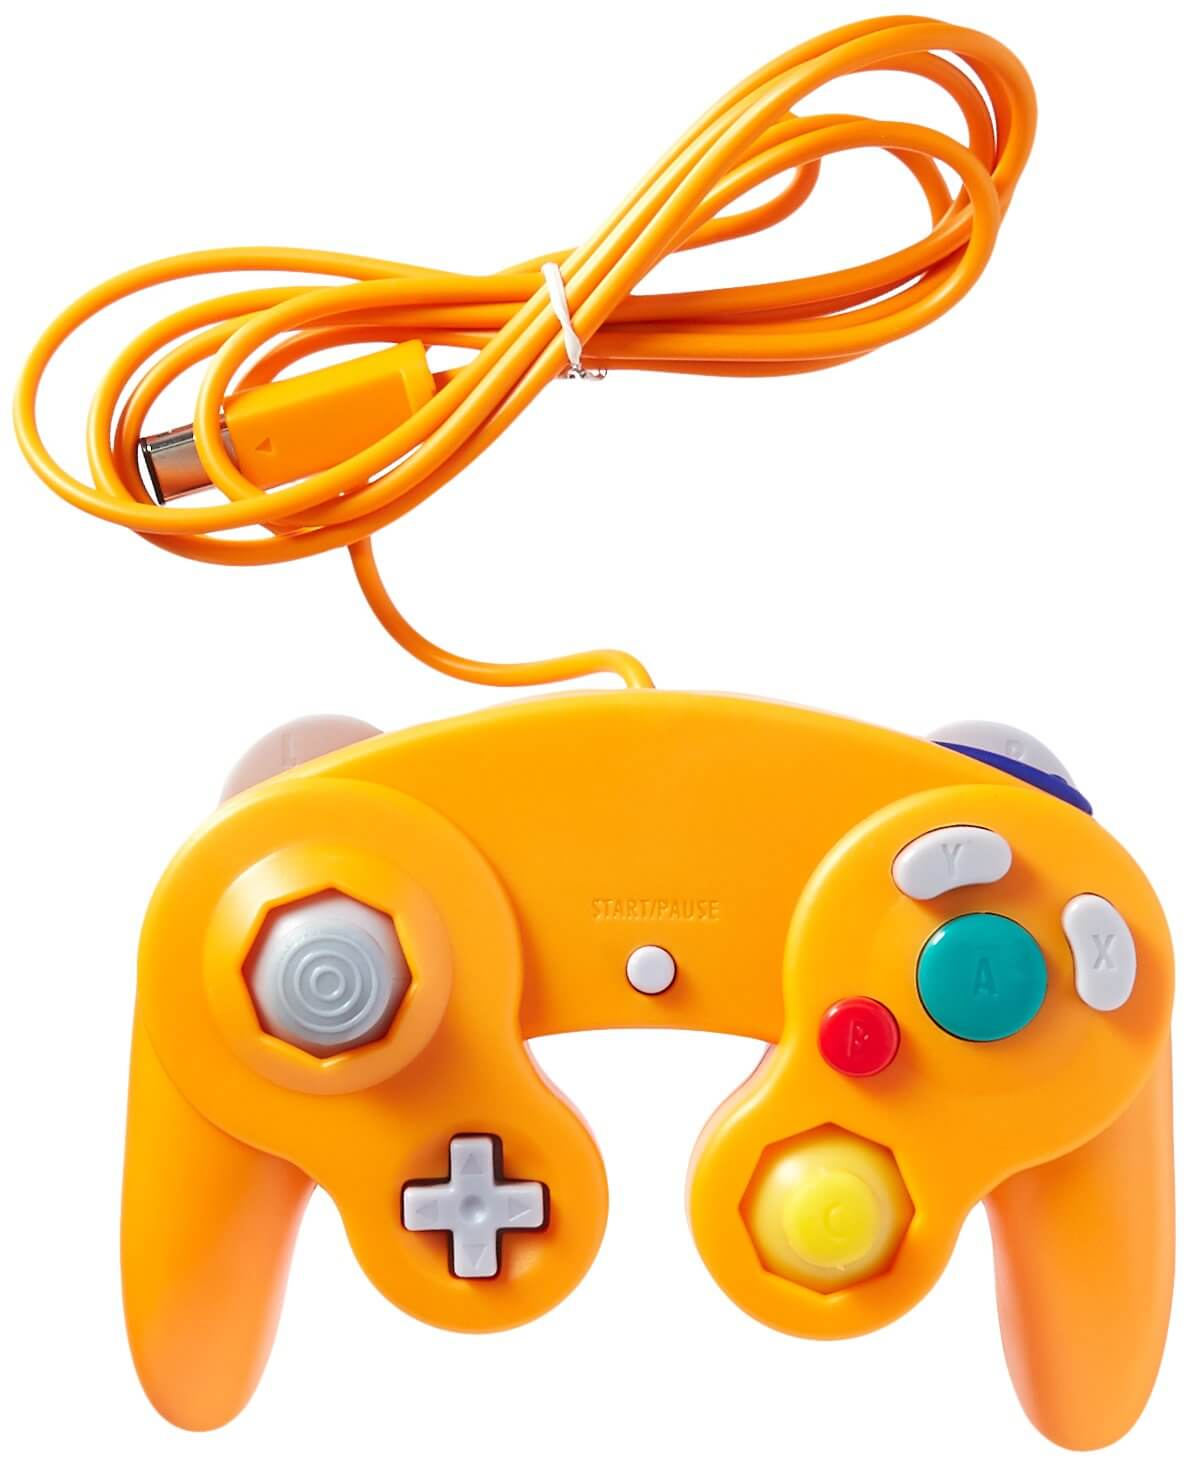 GameCube Controller – 3rd Party